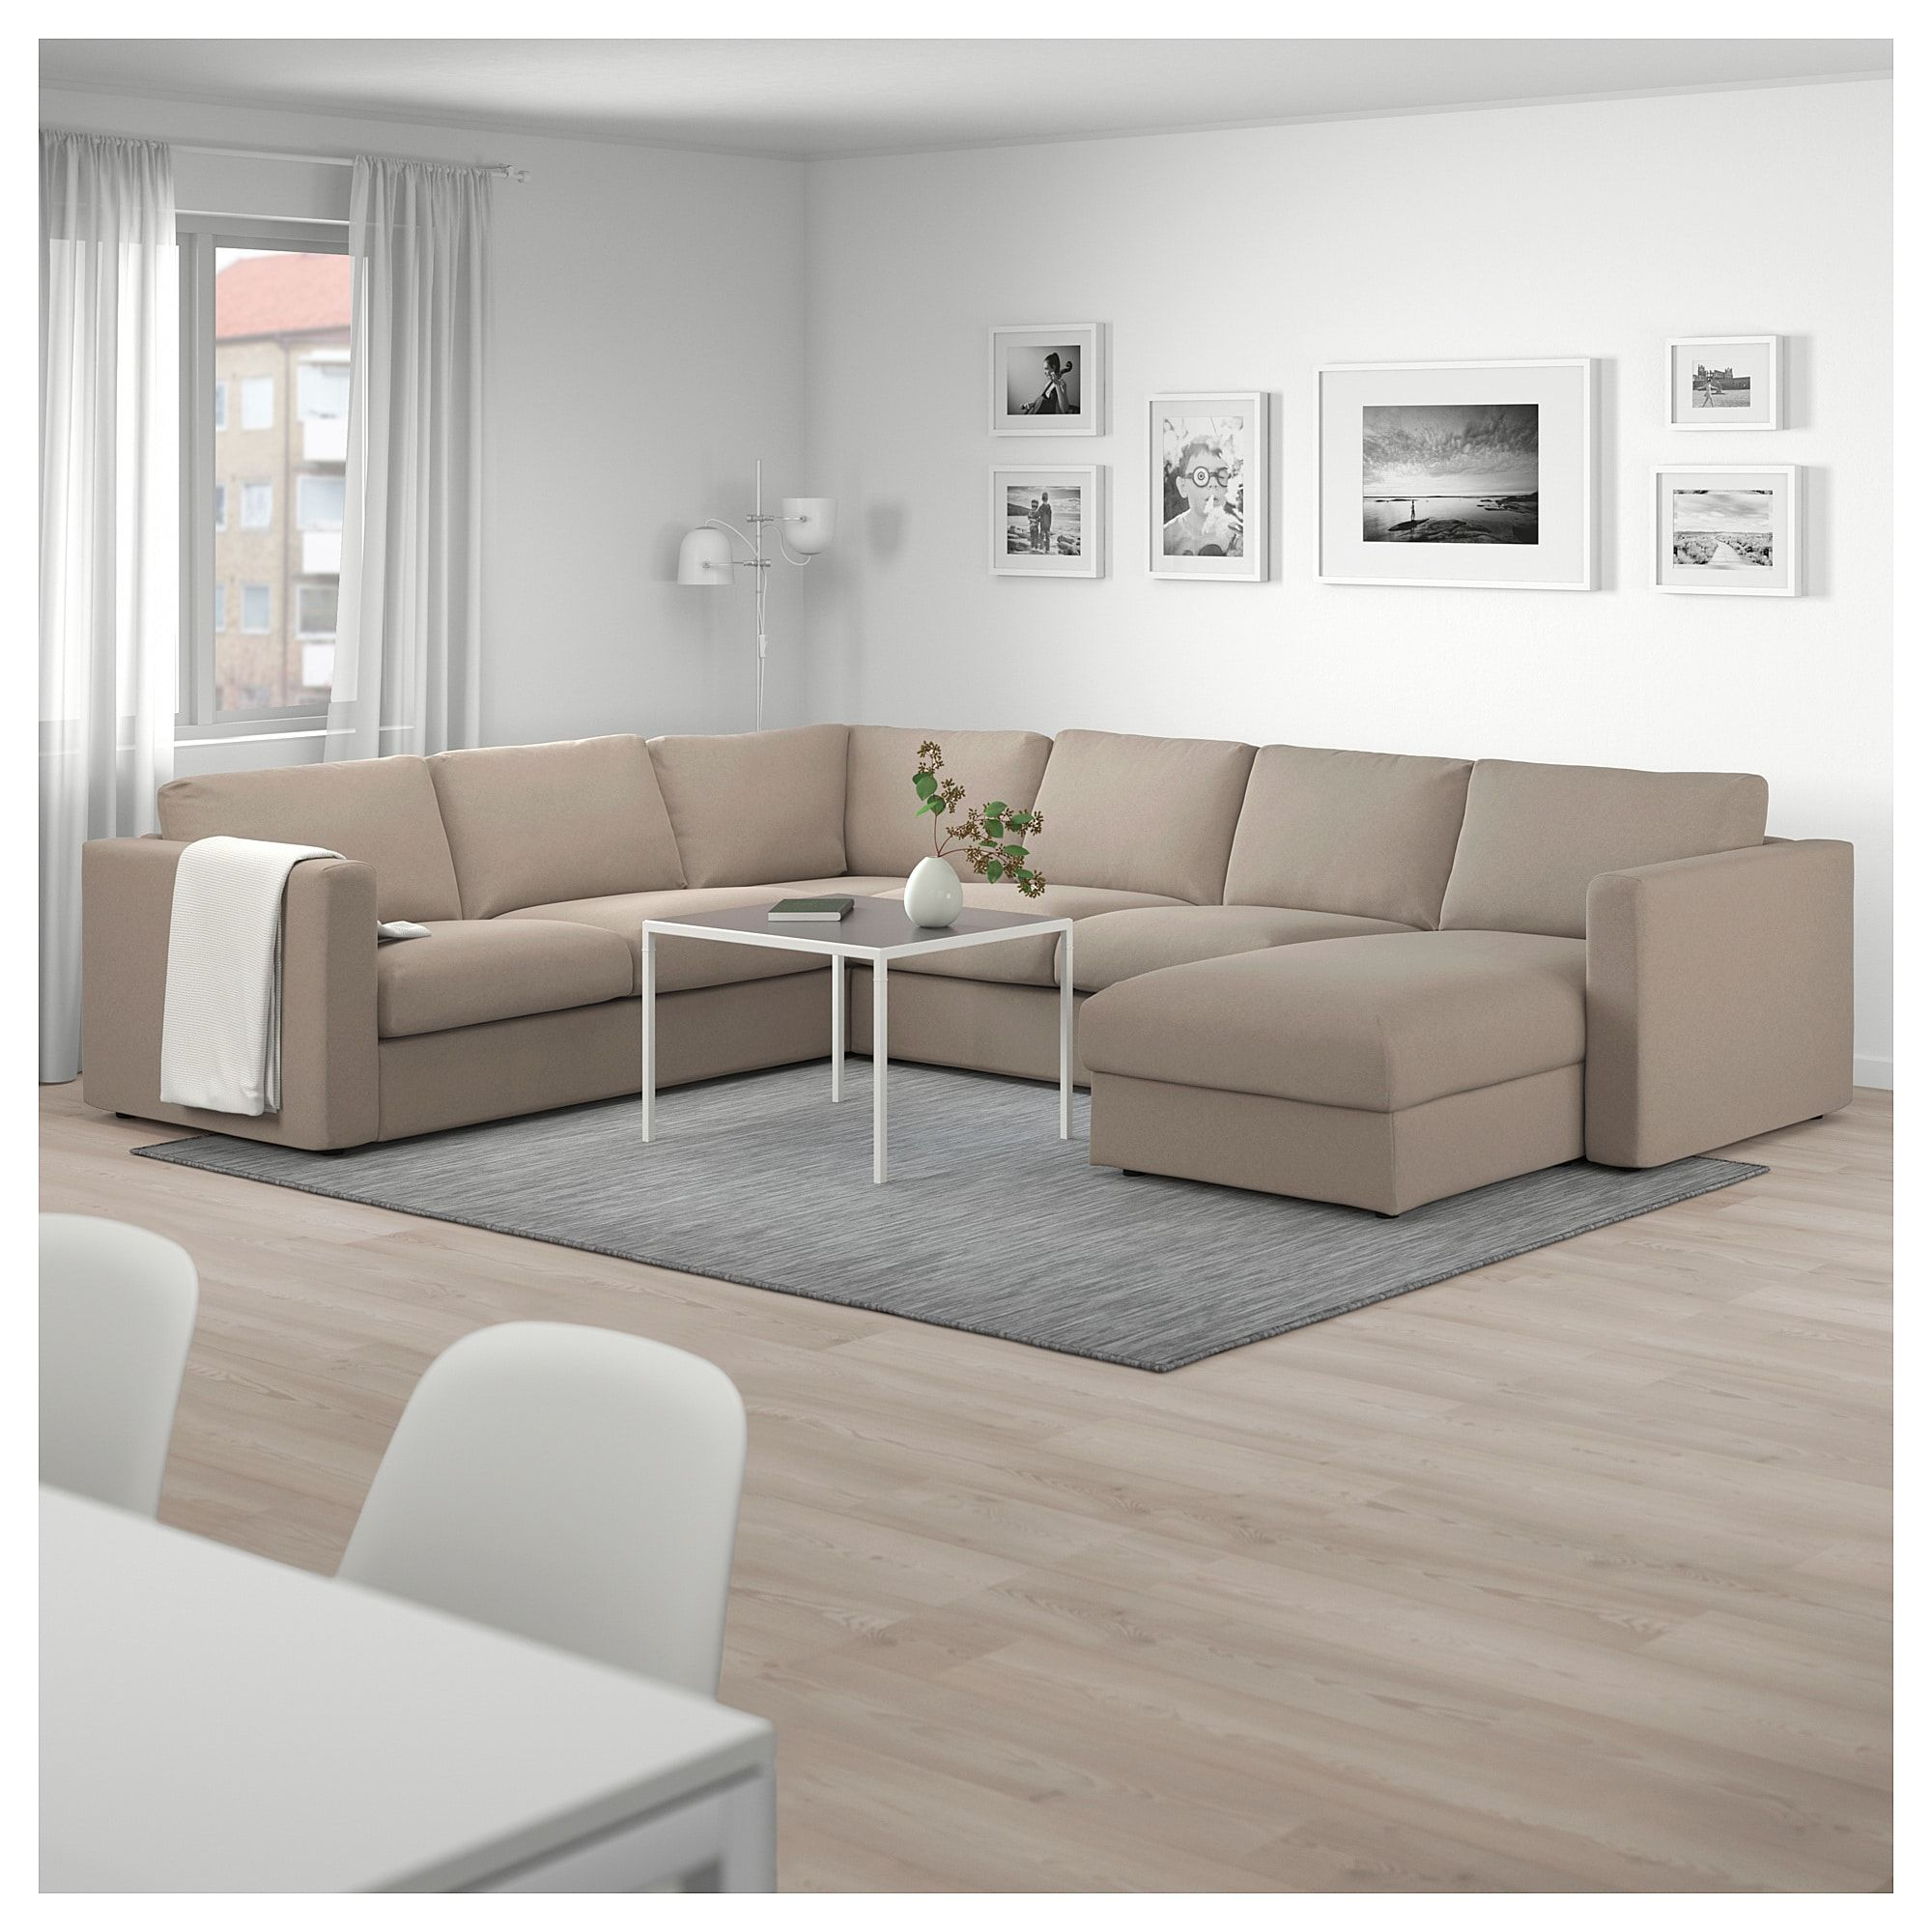 Vimle Sofa Ikea Dubai Vimle Sectional 5 Seat Corner With Chaise Tallmyra Beige In